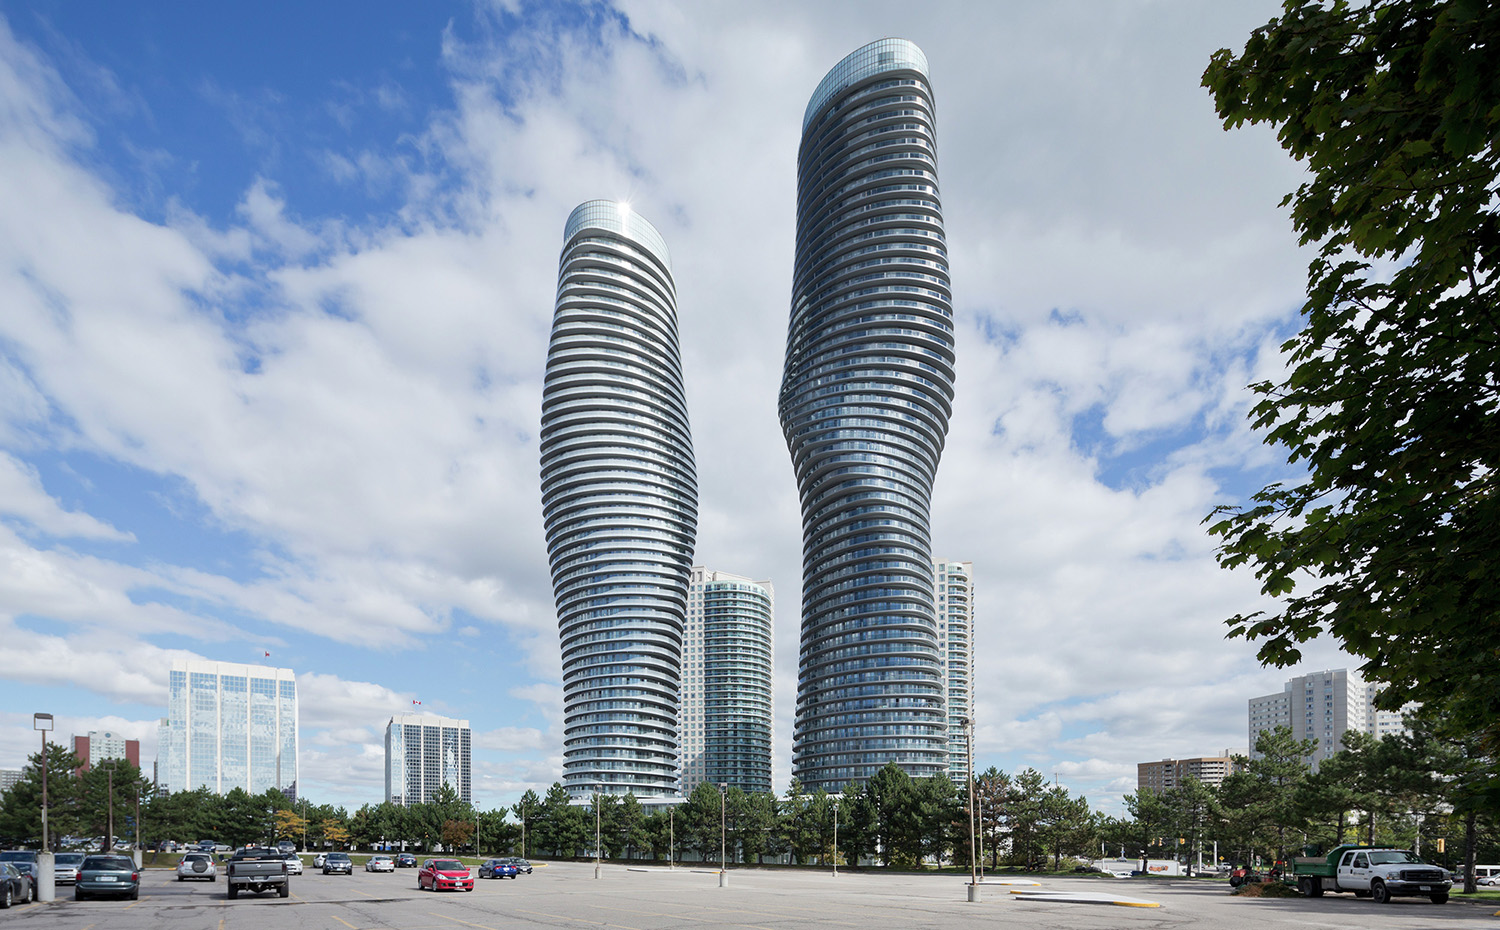 Absolute World Towers de Mississauga (Canadá), de MAD Architects